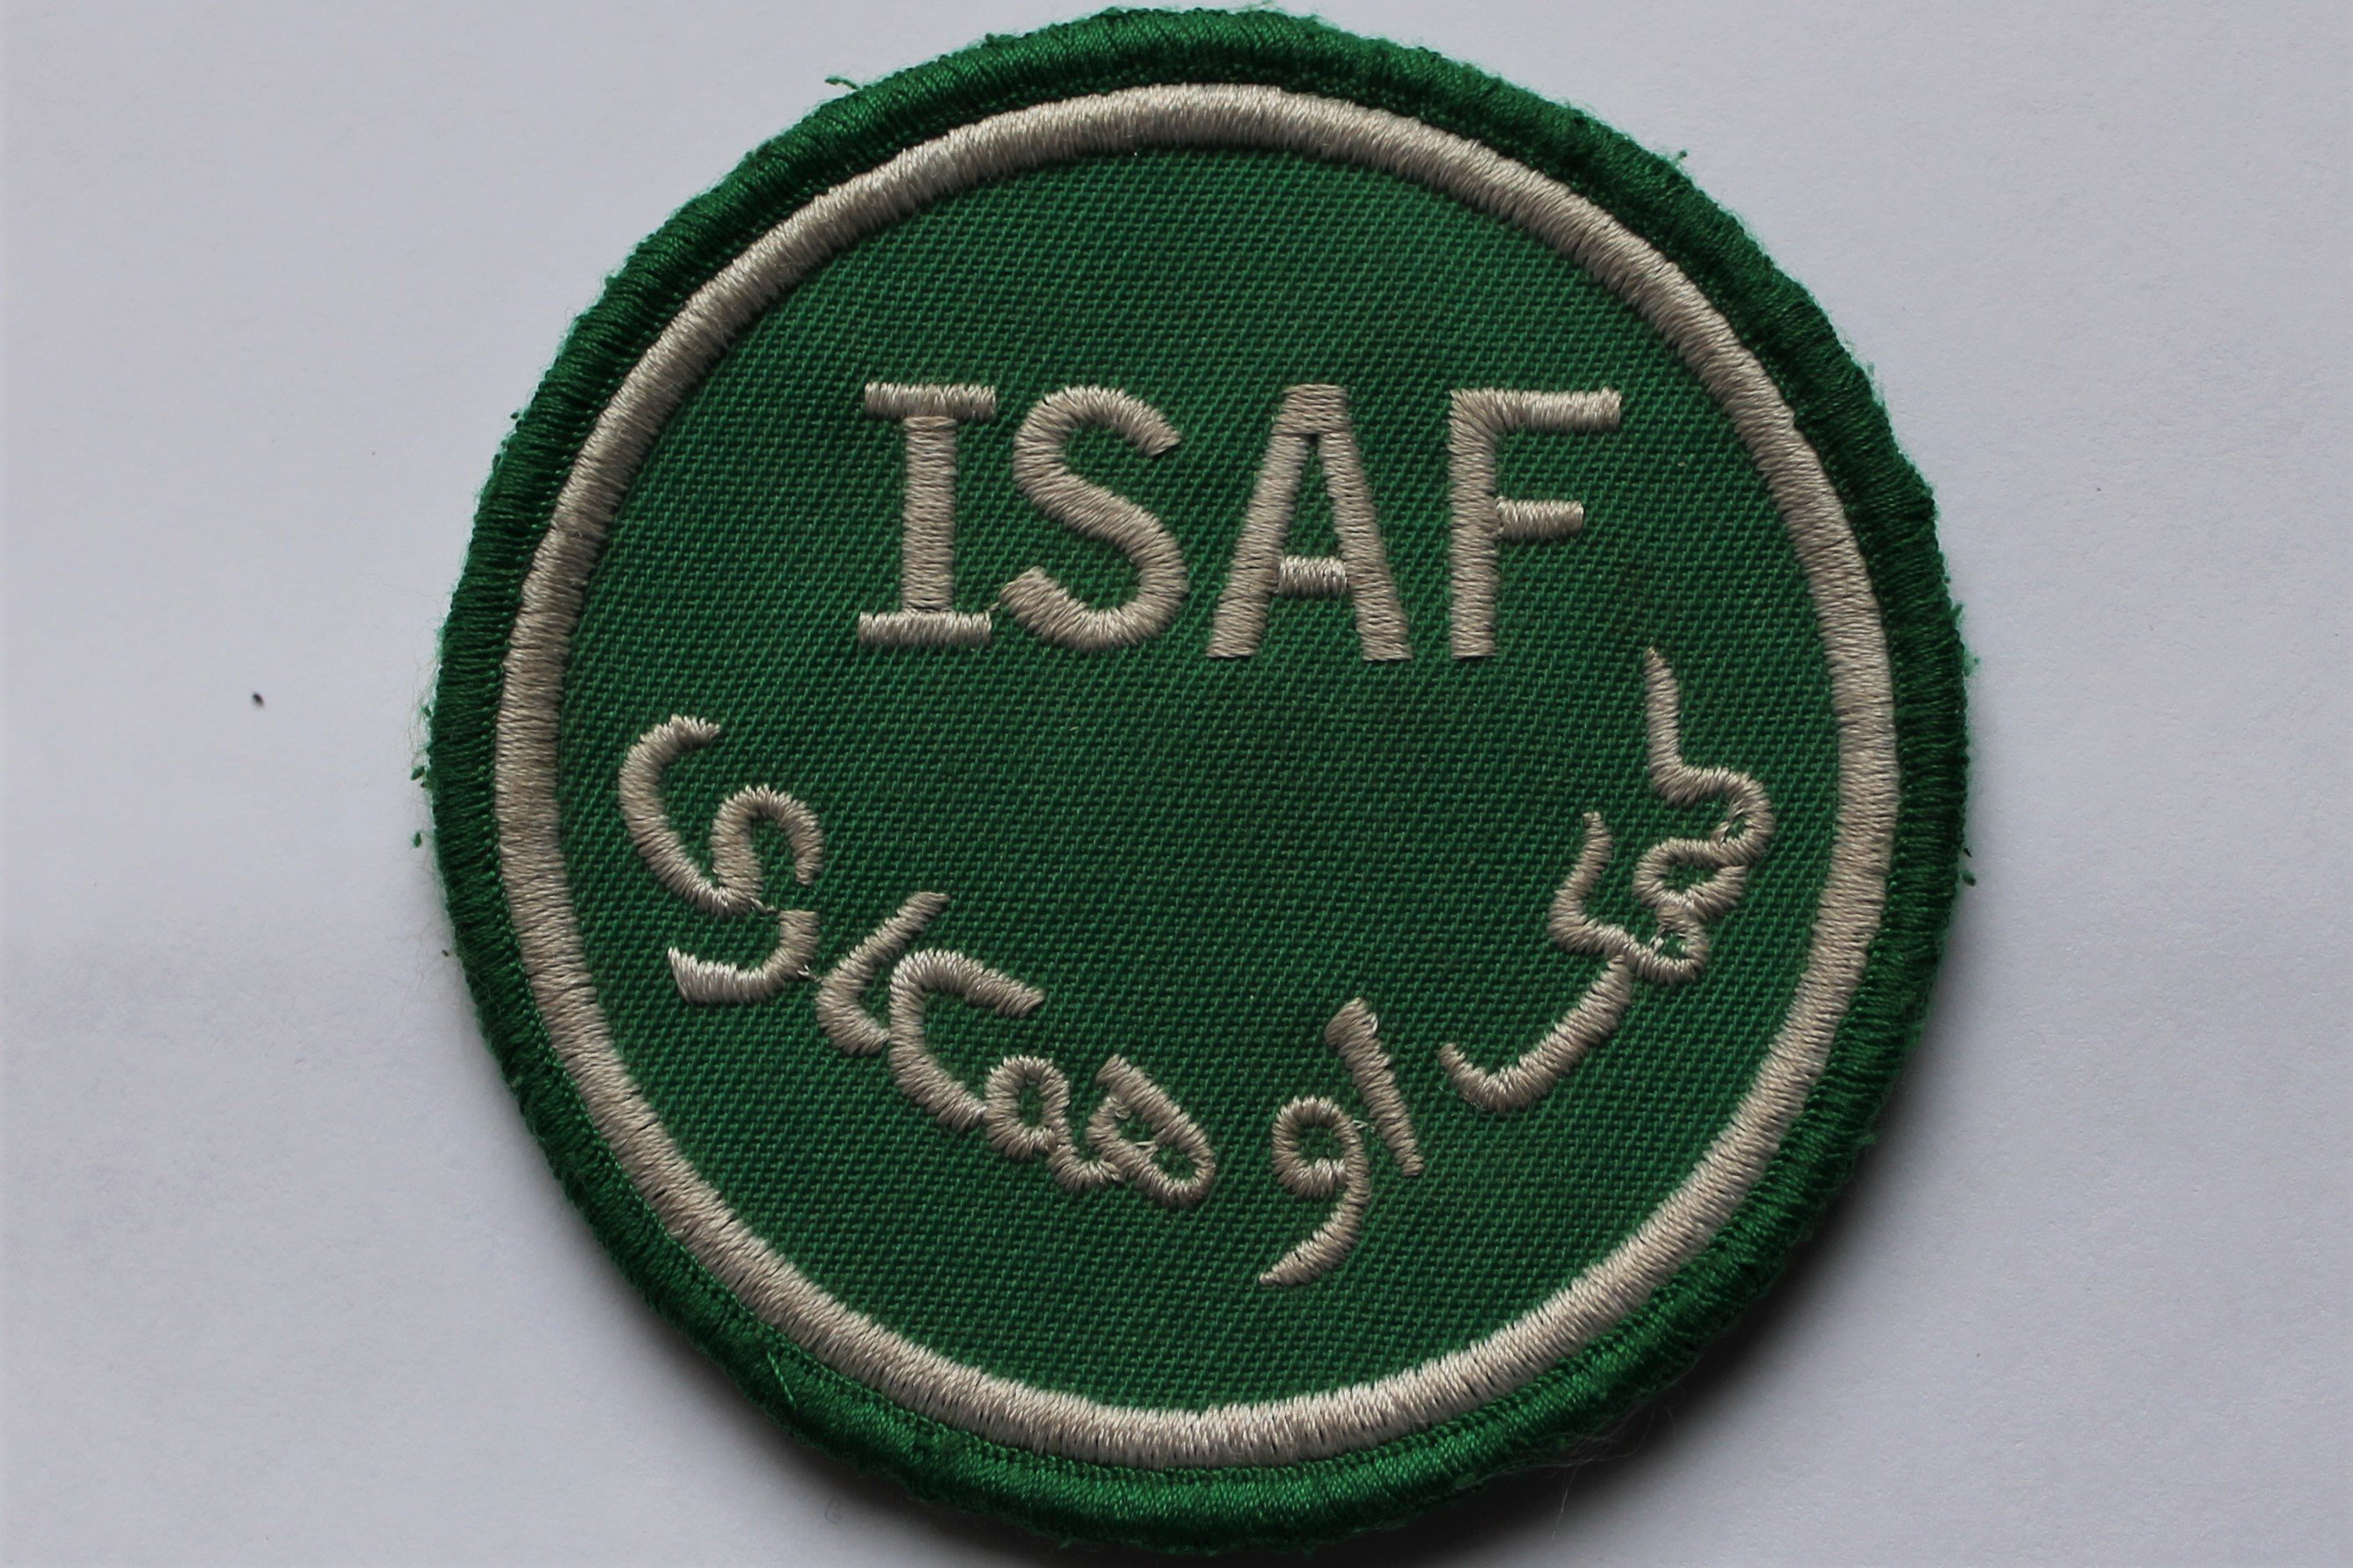 International Security Assistance Force (ISAF)